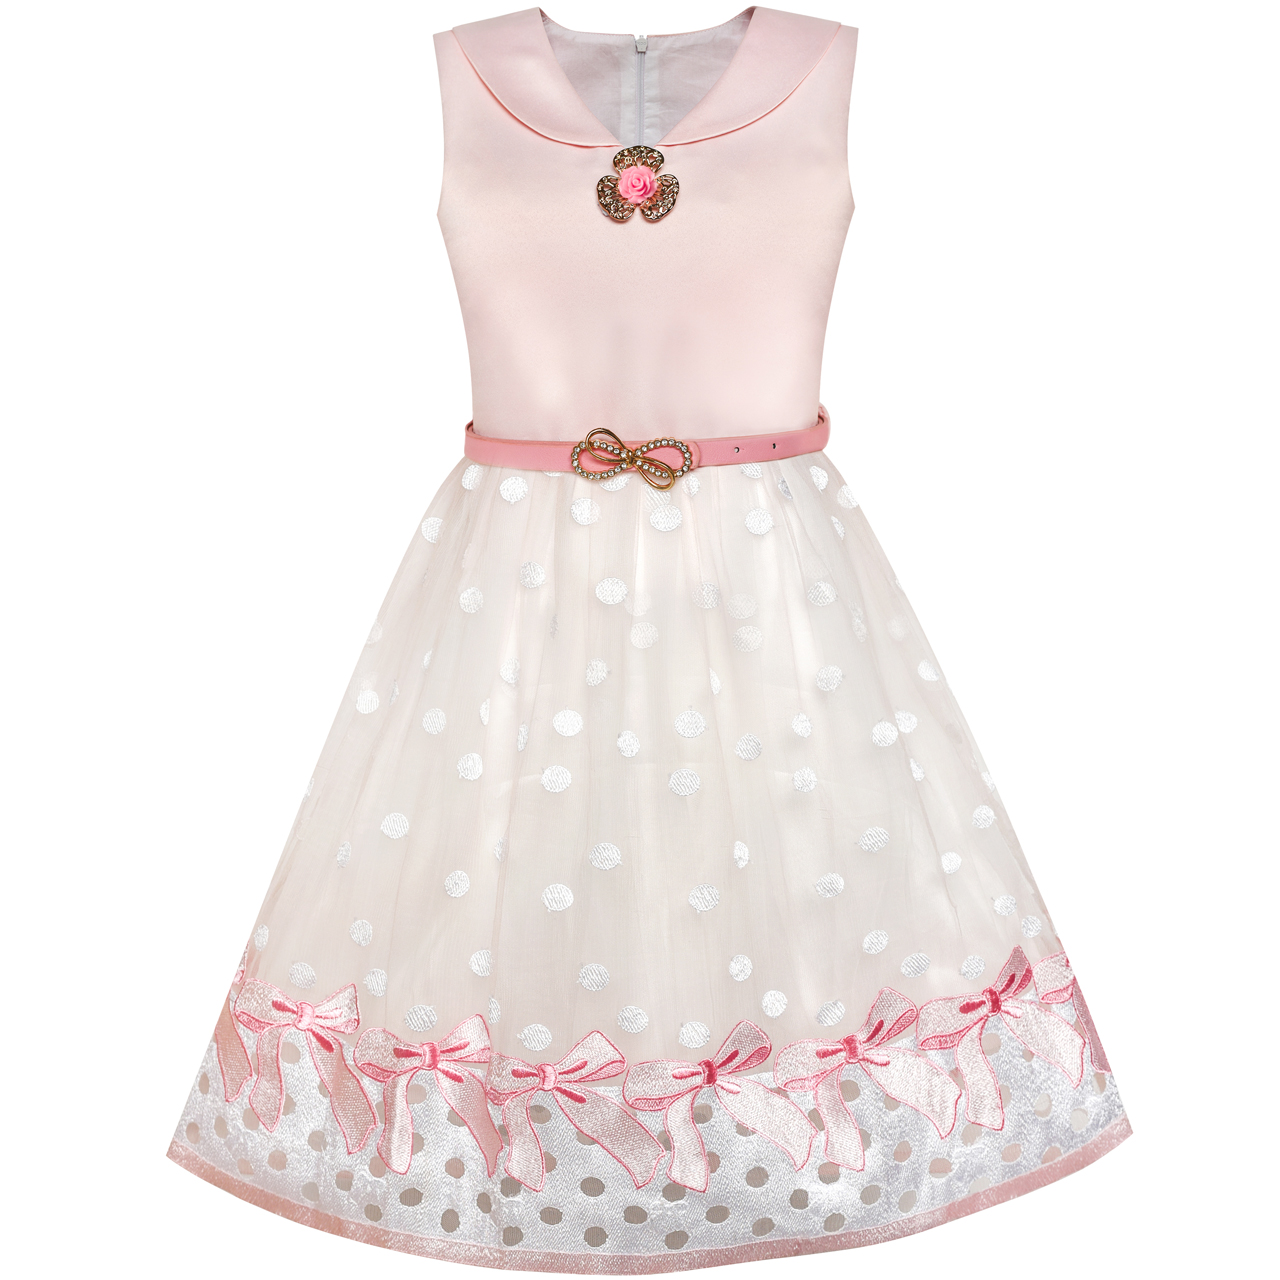 Flower Girl Dress Sailor Collar Pink Belted Bow Tie Elegant Dress 2018 Summer Princess Wedding Party Dresses Clothes Size 7-14 петух kelly s cross алюминий 6061 2012 derailleur hanger cross aluminum 6061 alloy 2012